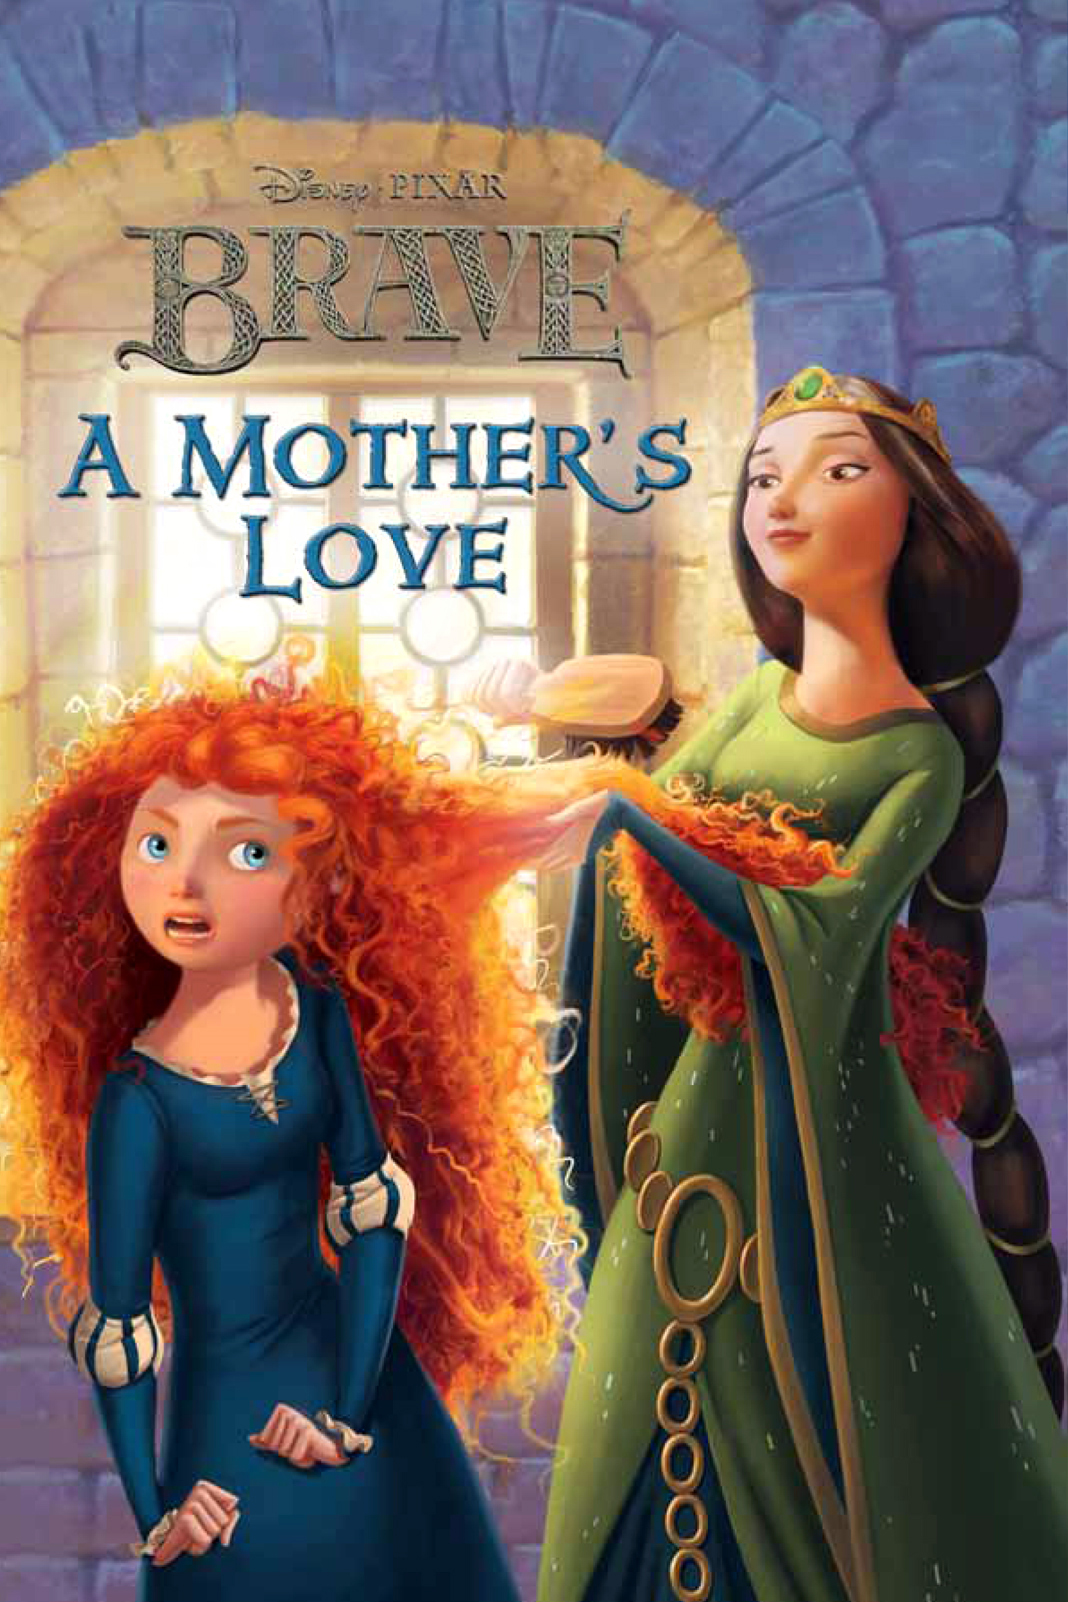 Brave:  A Mother's Love